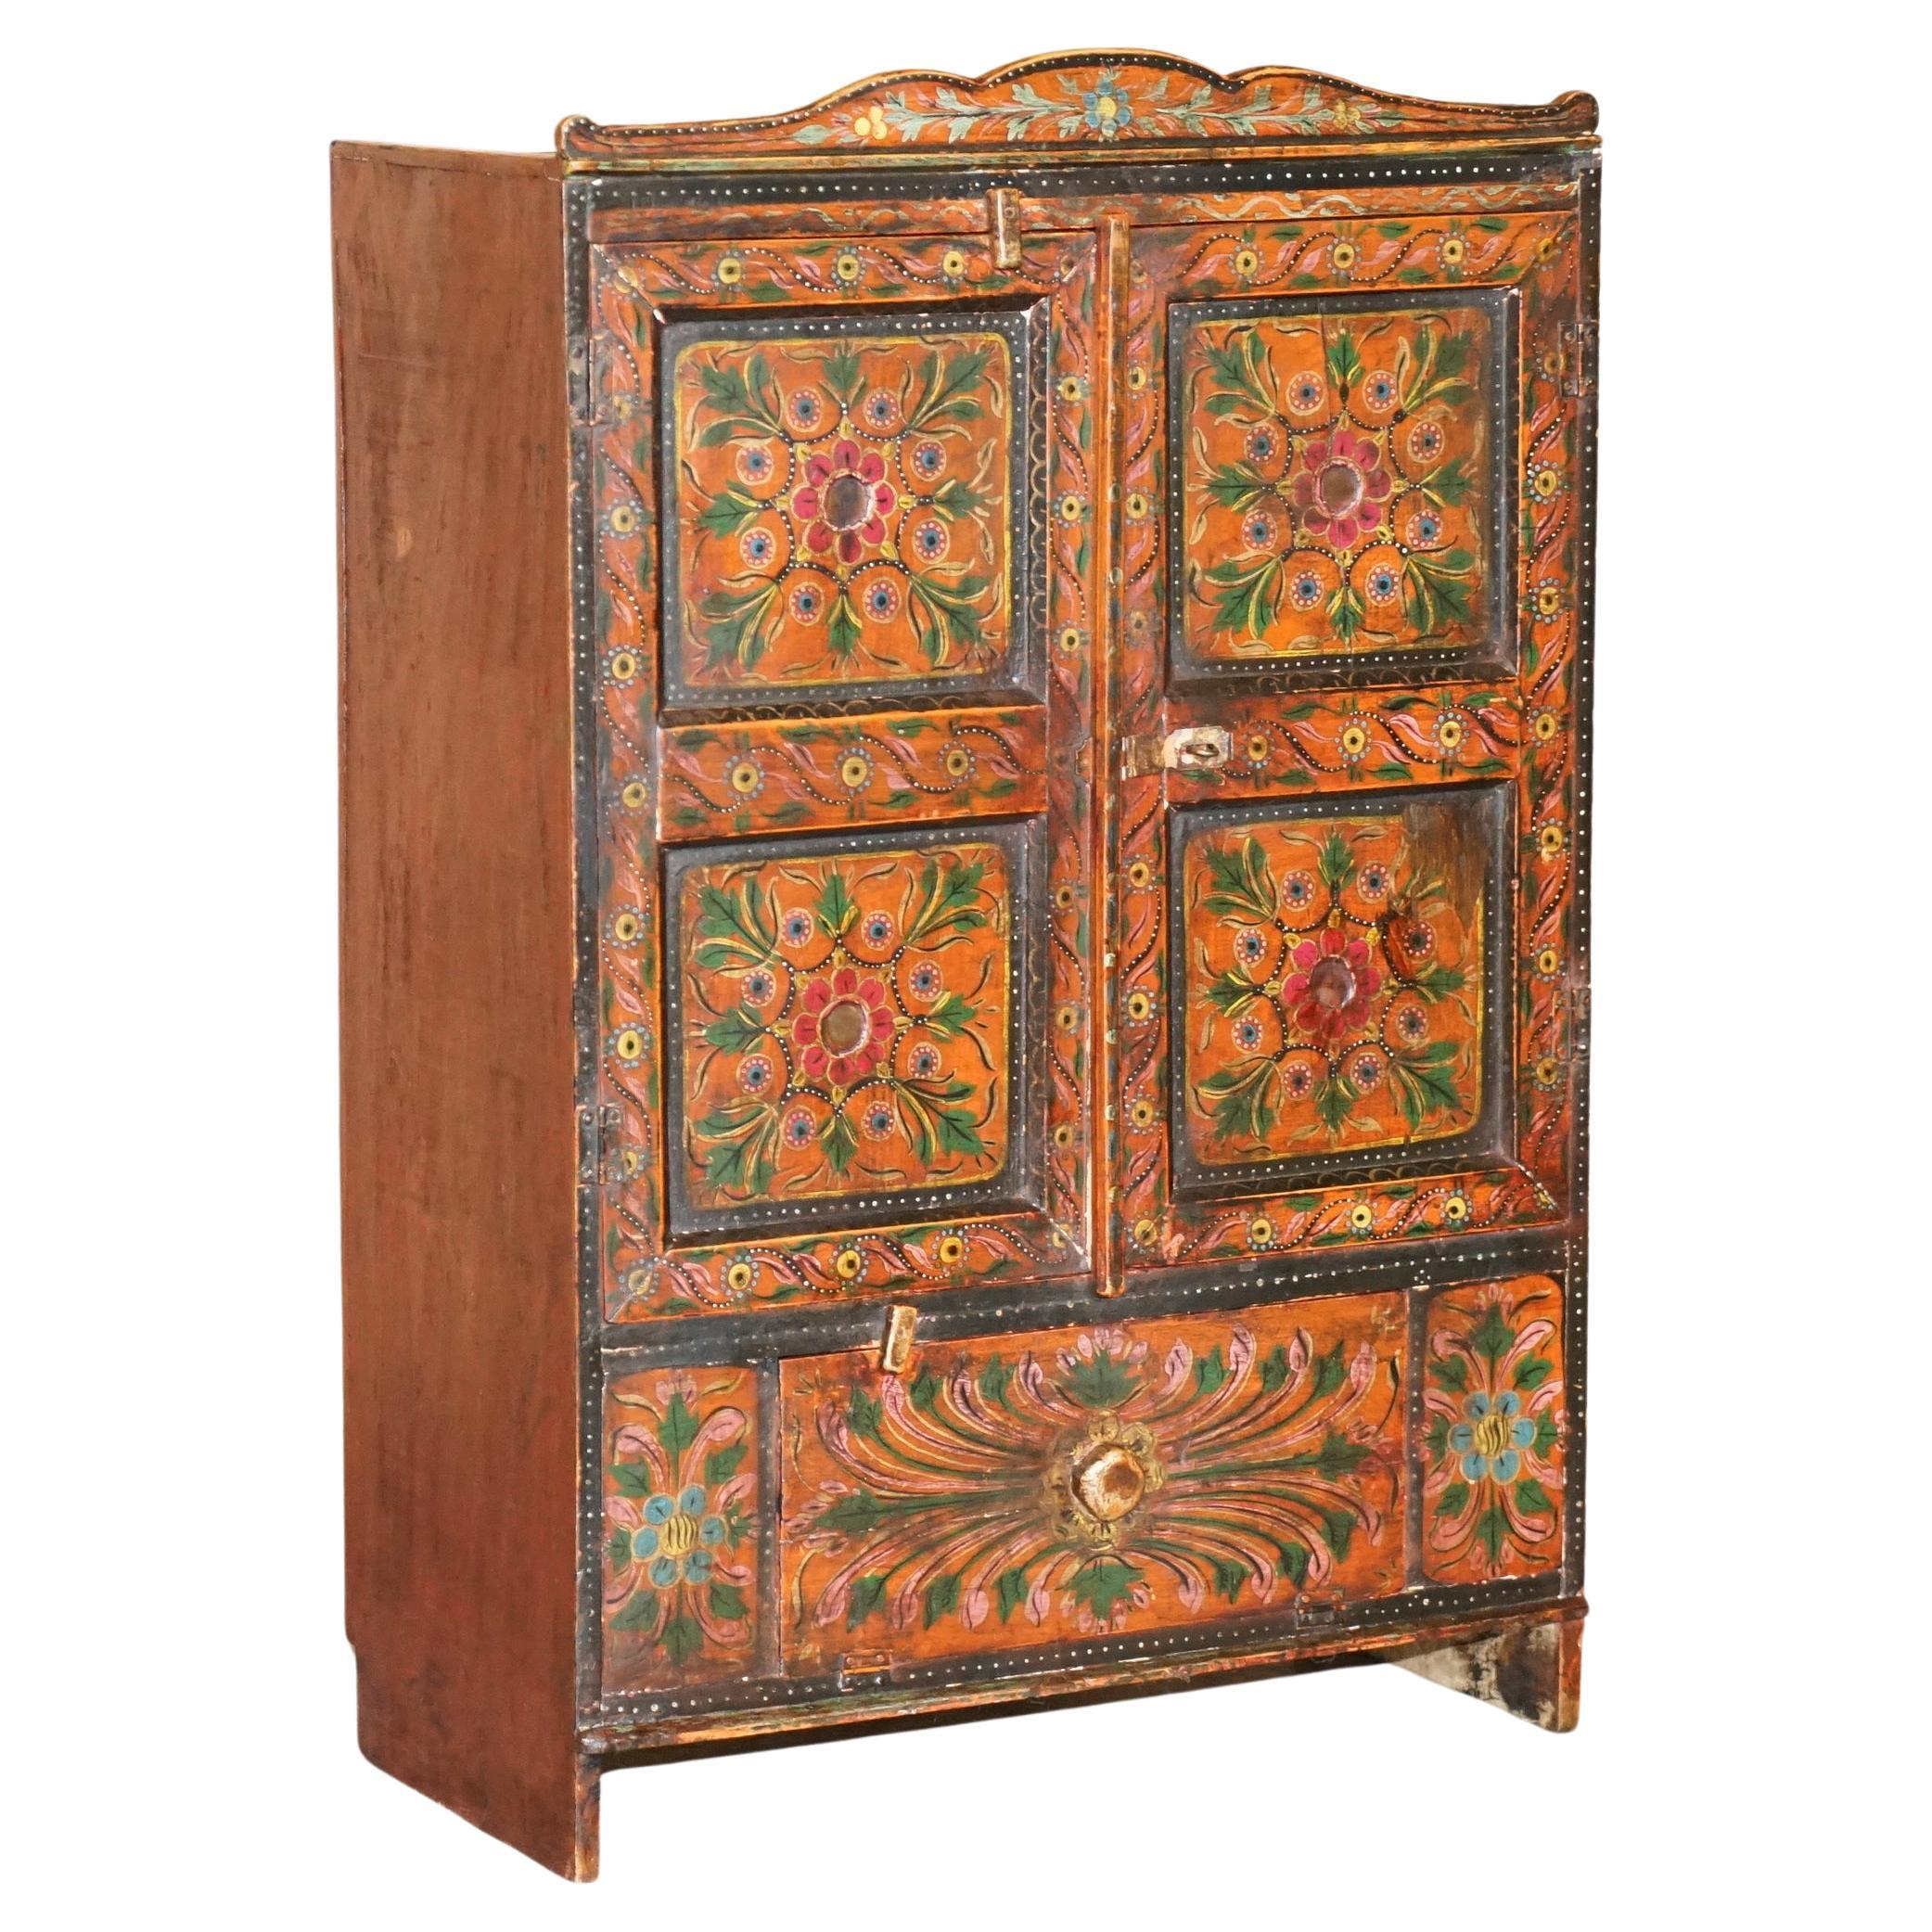 Lovely Antique circa 1860 Hand Painted East Europeon Side Cupboard Cabinet